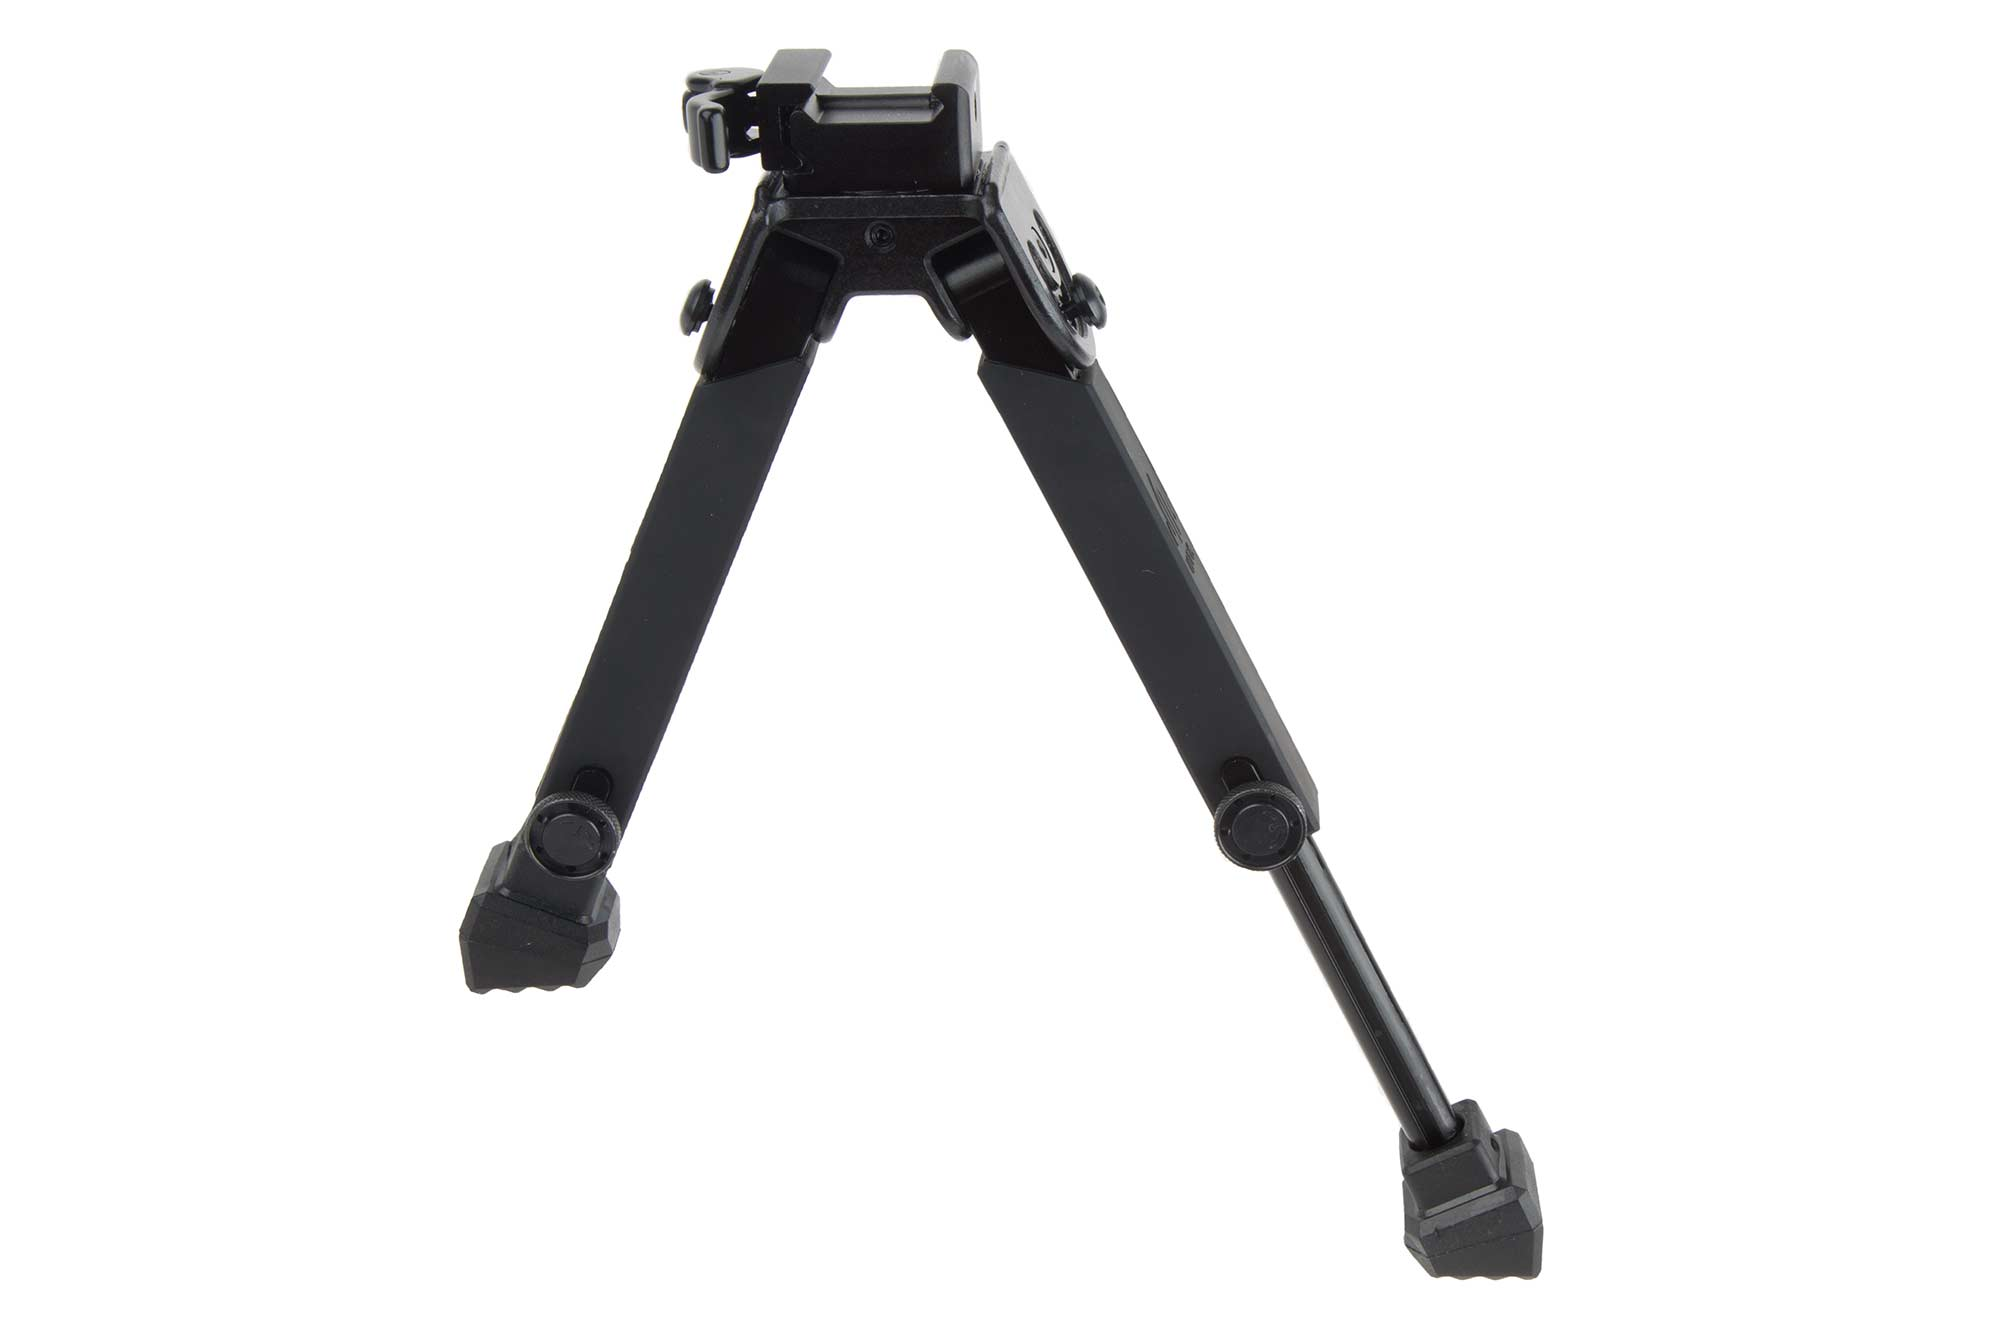 Leapers UTG Rubber Armored Full Metal QD Bipod - 6.0 to 8.5""